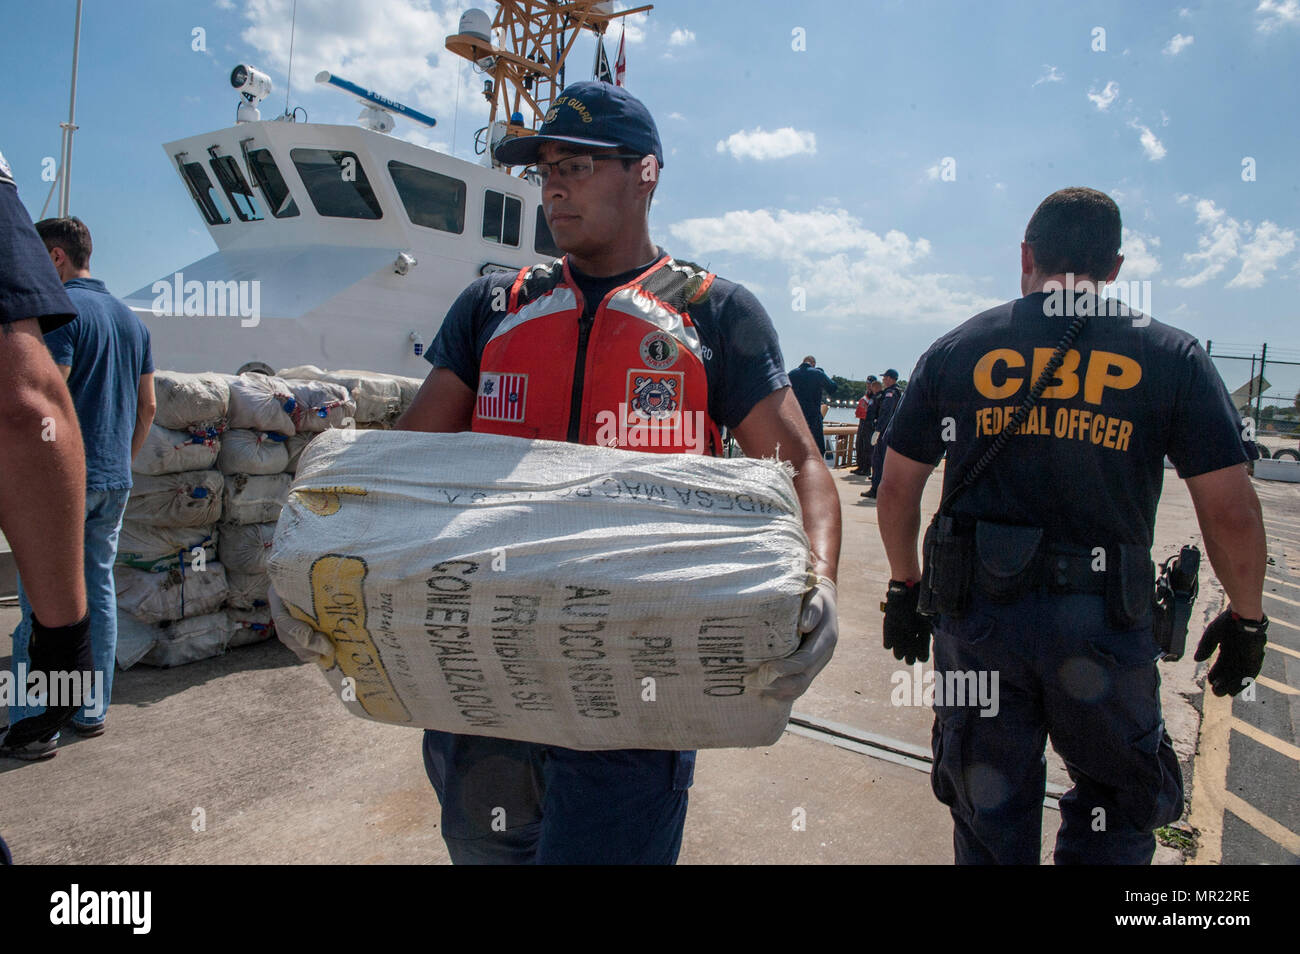 A crew member from Coast Guard Cutter Tarpon, an 87-foot Coast Patrol Boat homeported in St. Petersburg, Florida, and his crew offload 1,735 kilograms of cocaine, an estimated wholesale value of $56 million, Wednesday, May 3, 2017 at Coast Guard Sector St. Petersburg, Florida. The contraband was interdicted during four separate cases supporting Operation Martillo, a joint interagency and multi-national collaborative effort among 14 Western Hemisphere and European nations to stop the flow of illicit cargo by Transnational Criminal Organizations. (U.S. Coast Guard photo by Petty Officer 1st Clas - Stock Image